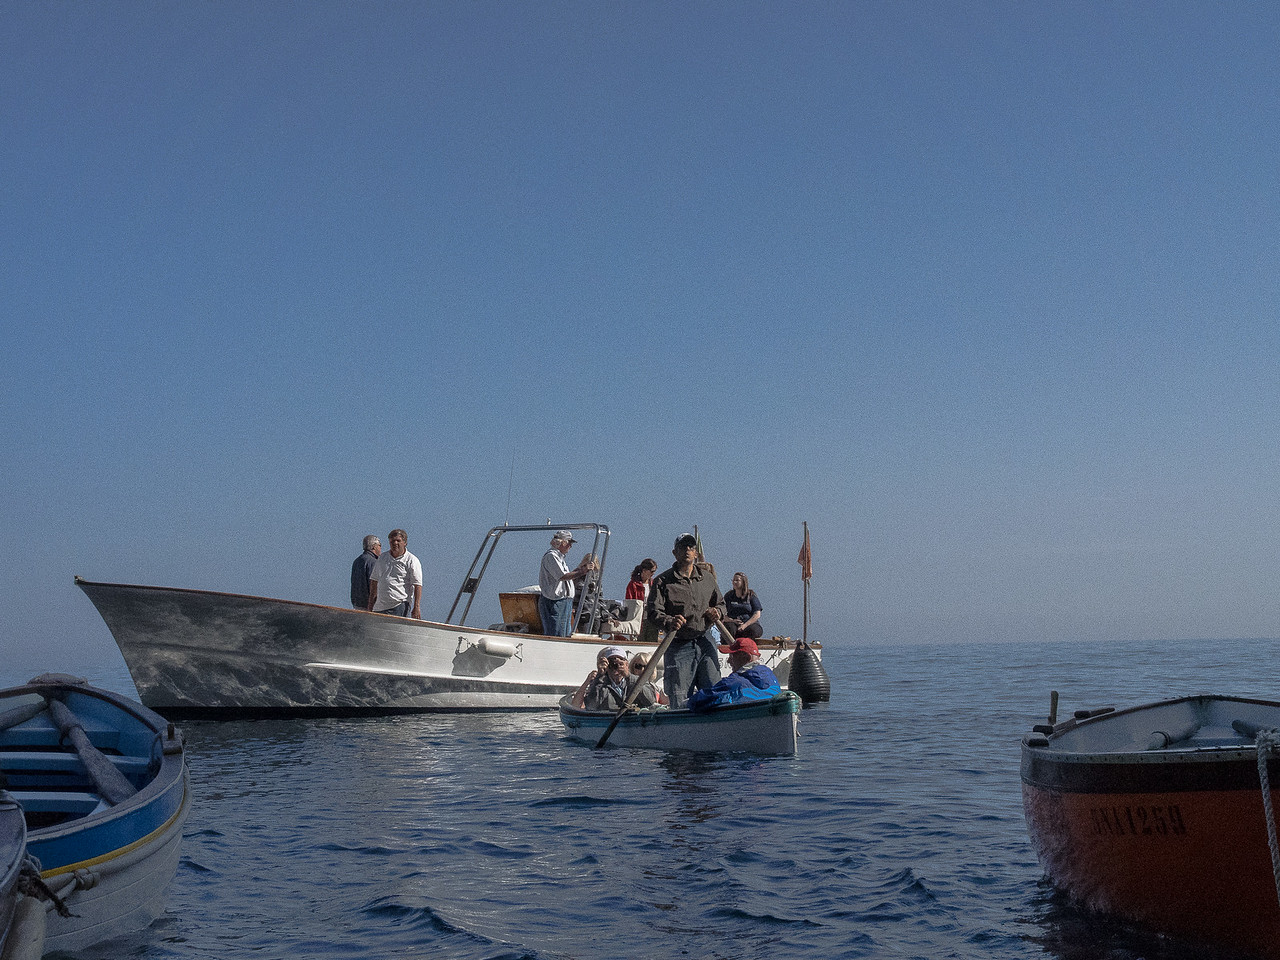 People being taken from motorboats (motoscaffisti) to row boats for trip into the grotto